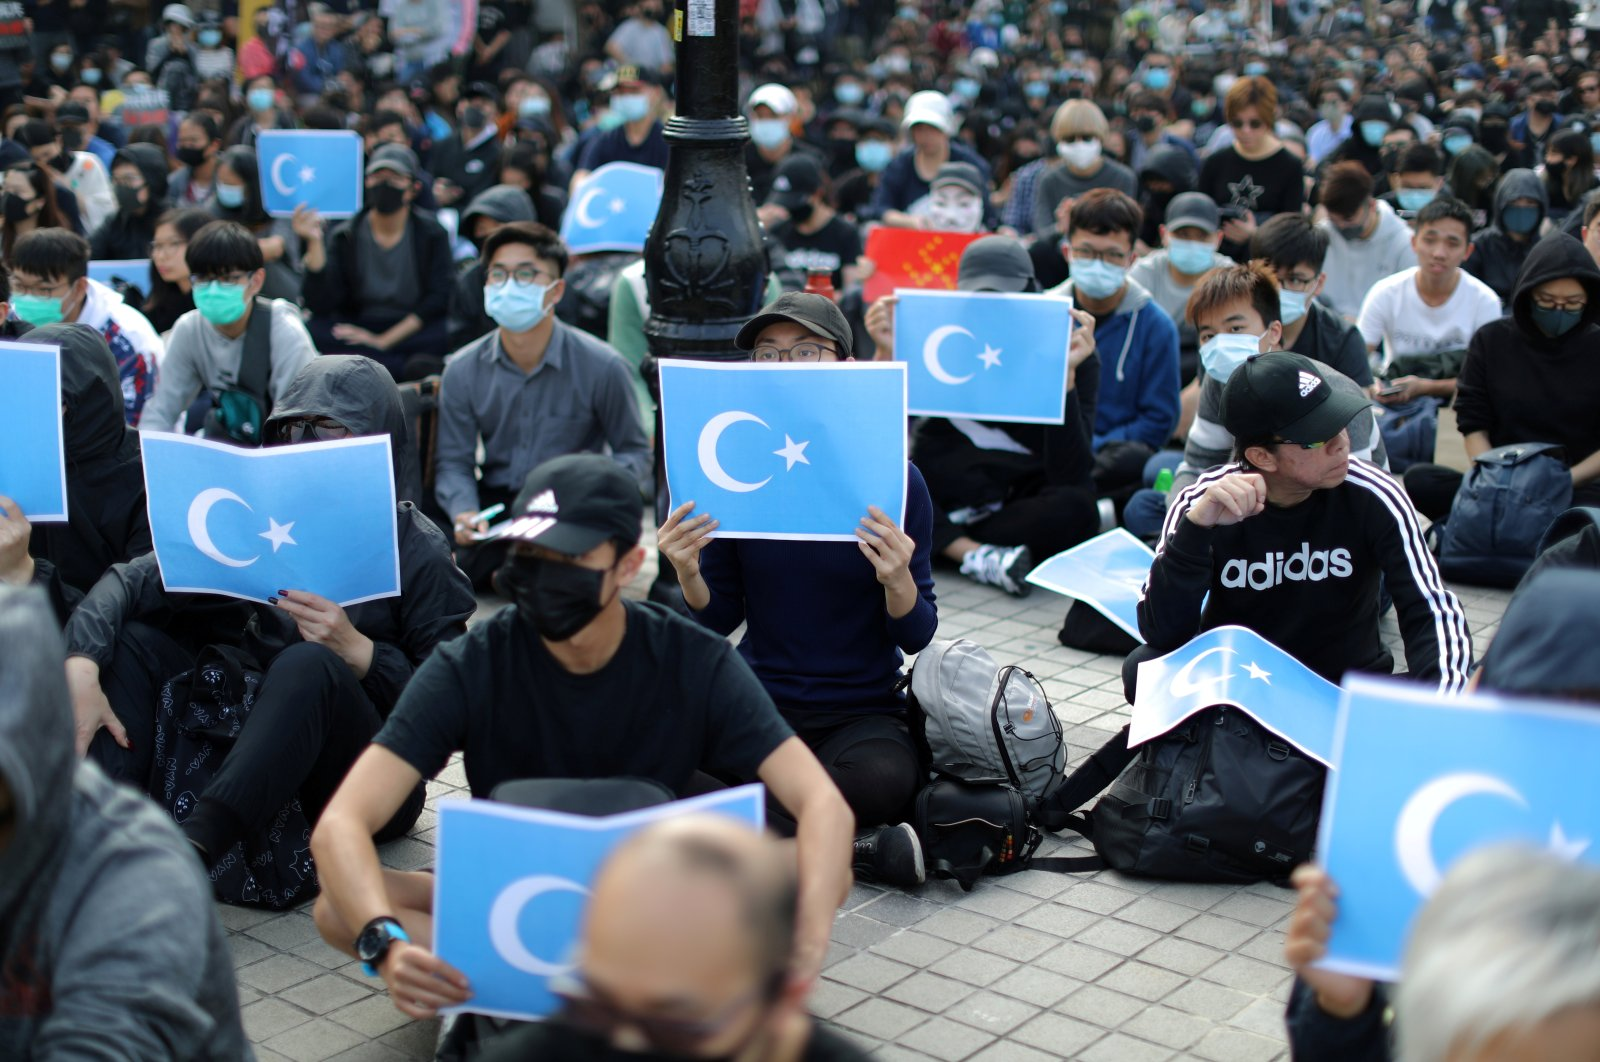 Hong Kong protesters hold East Turkestan Uyghur flags at a rally in support of Xinjiang Uyghurs' human rights in Hong Kong, China, Dec. 22, 2019. (REUTERS)